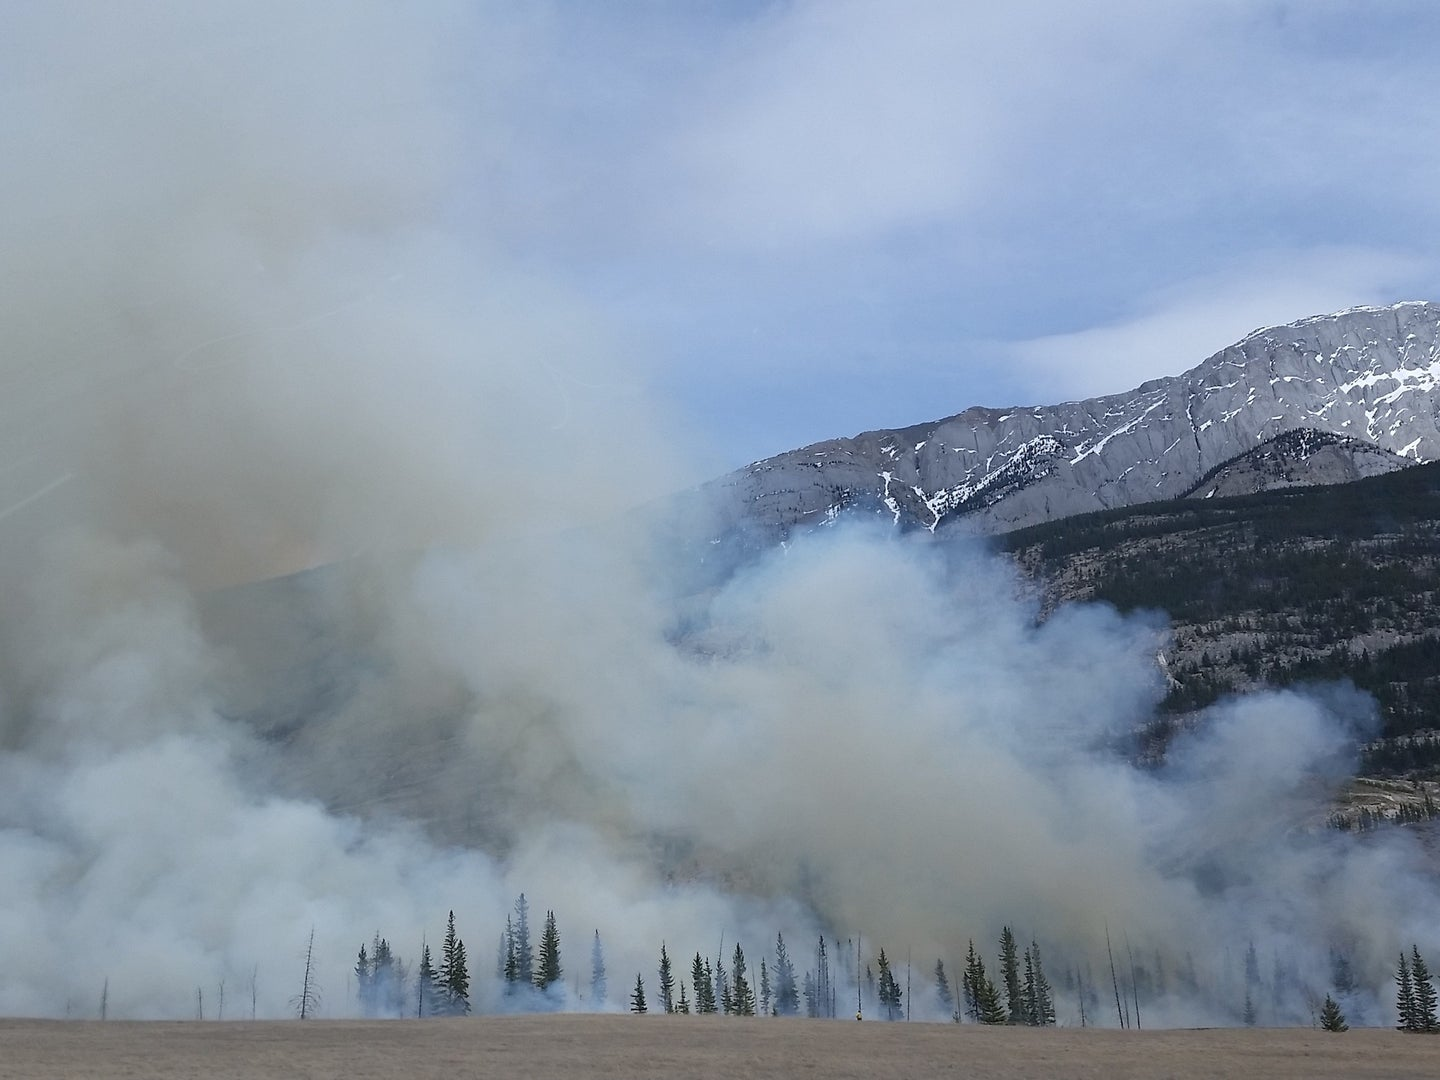 smoke rising from forest fire with mountain in background